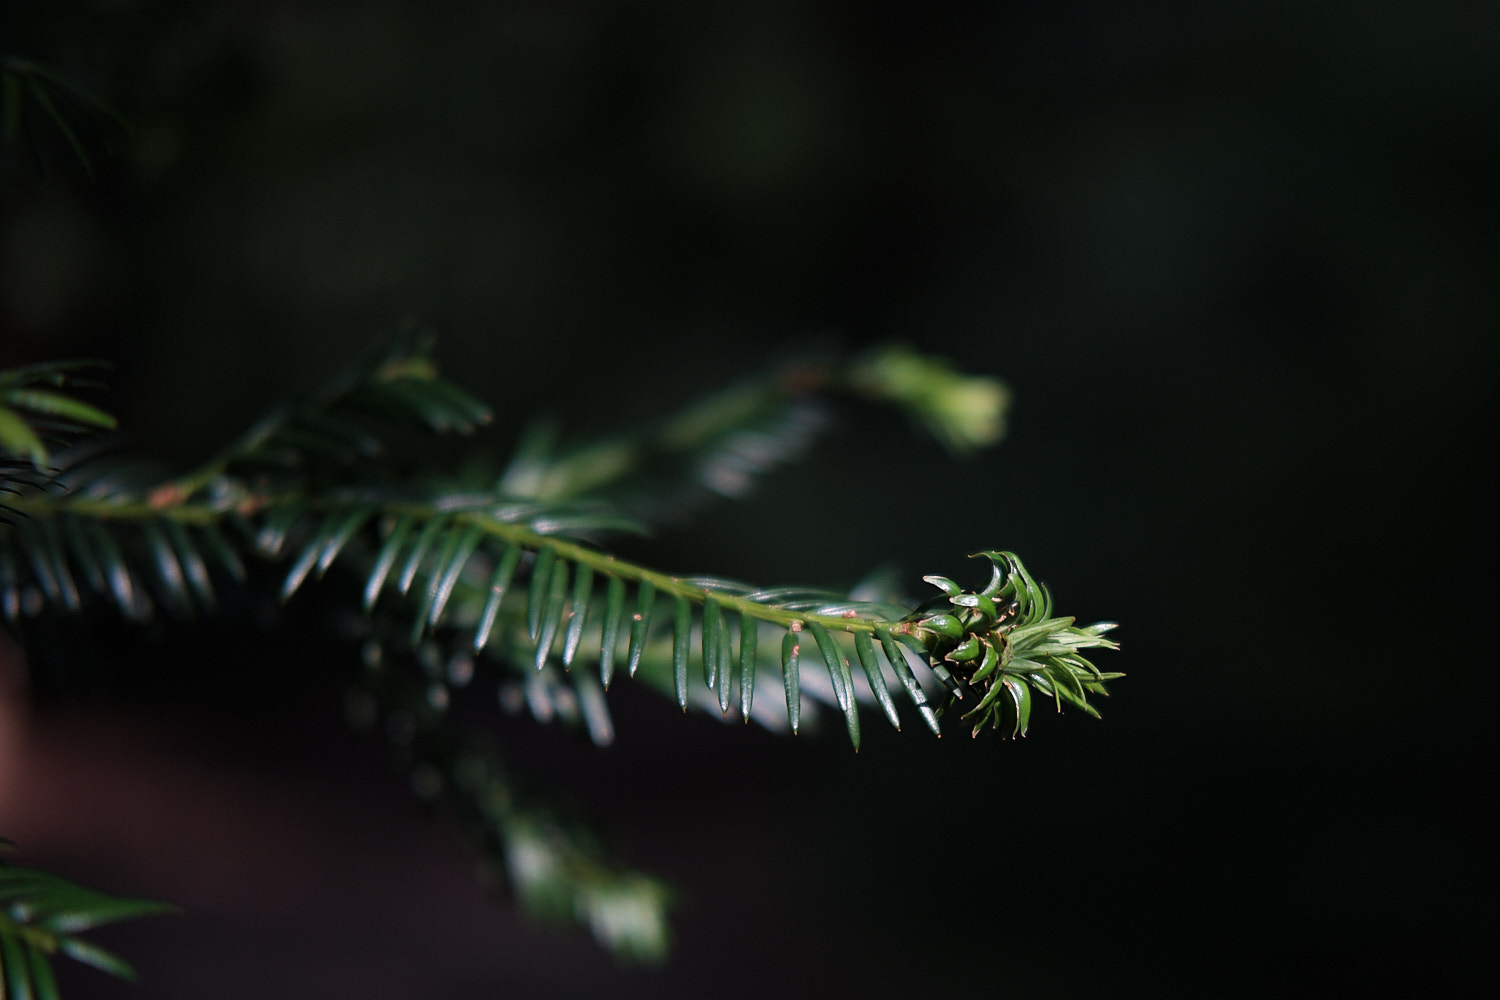 close up of a yew's leaf